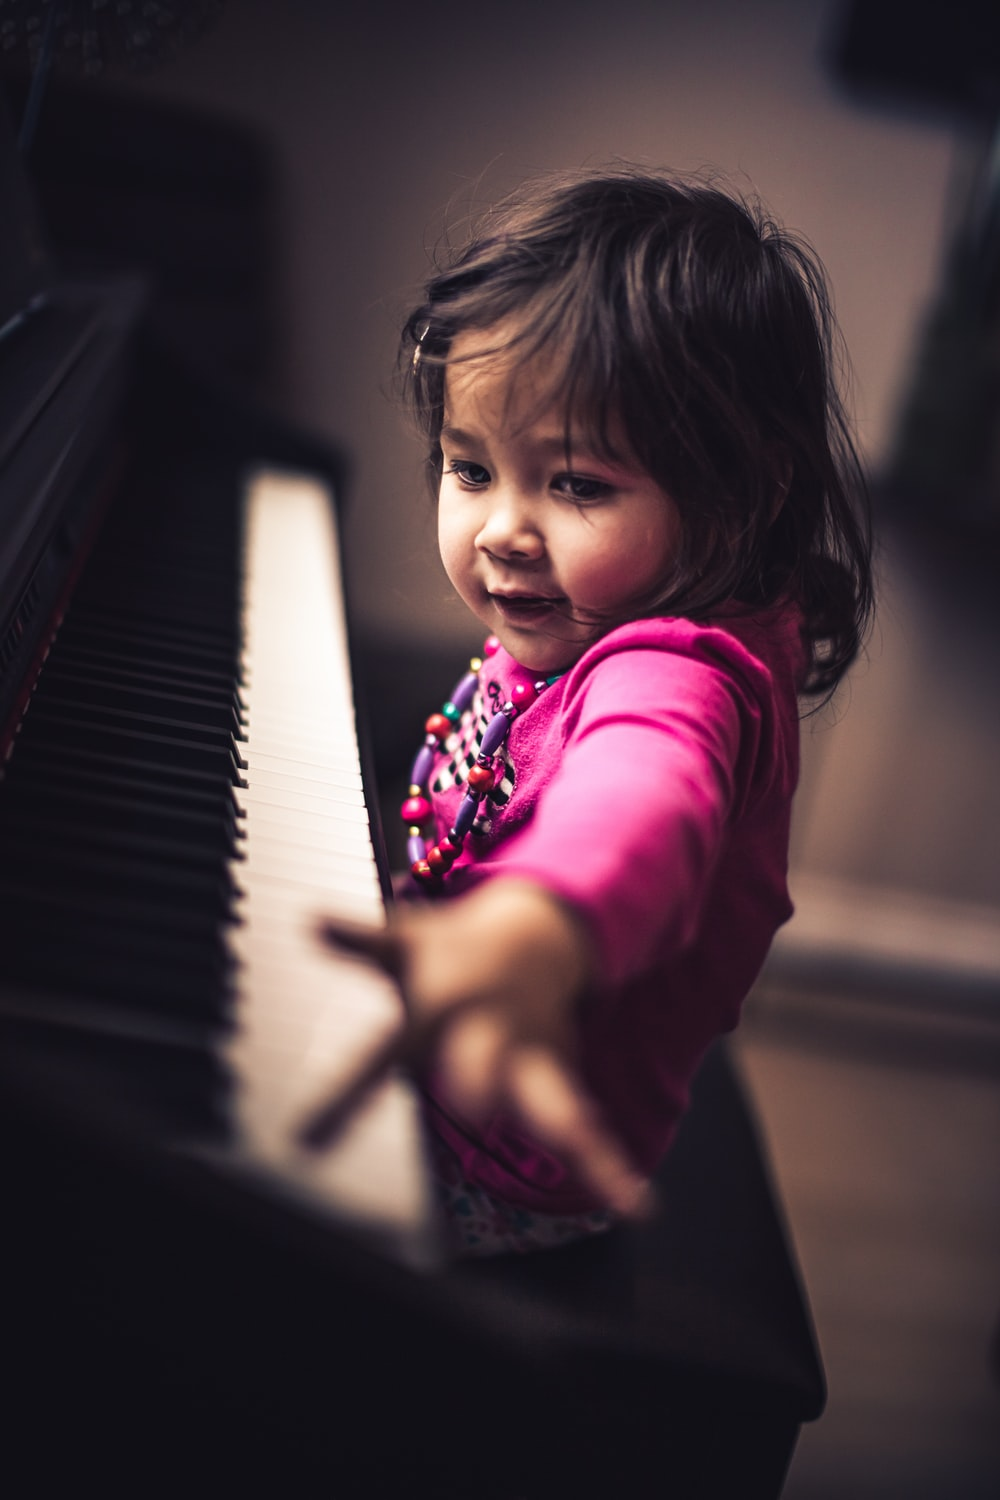 girl in pink long sleeve shirt playing piano